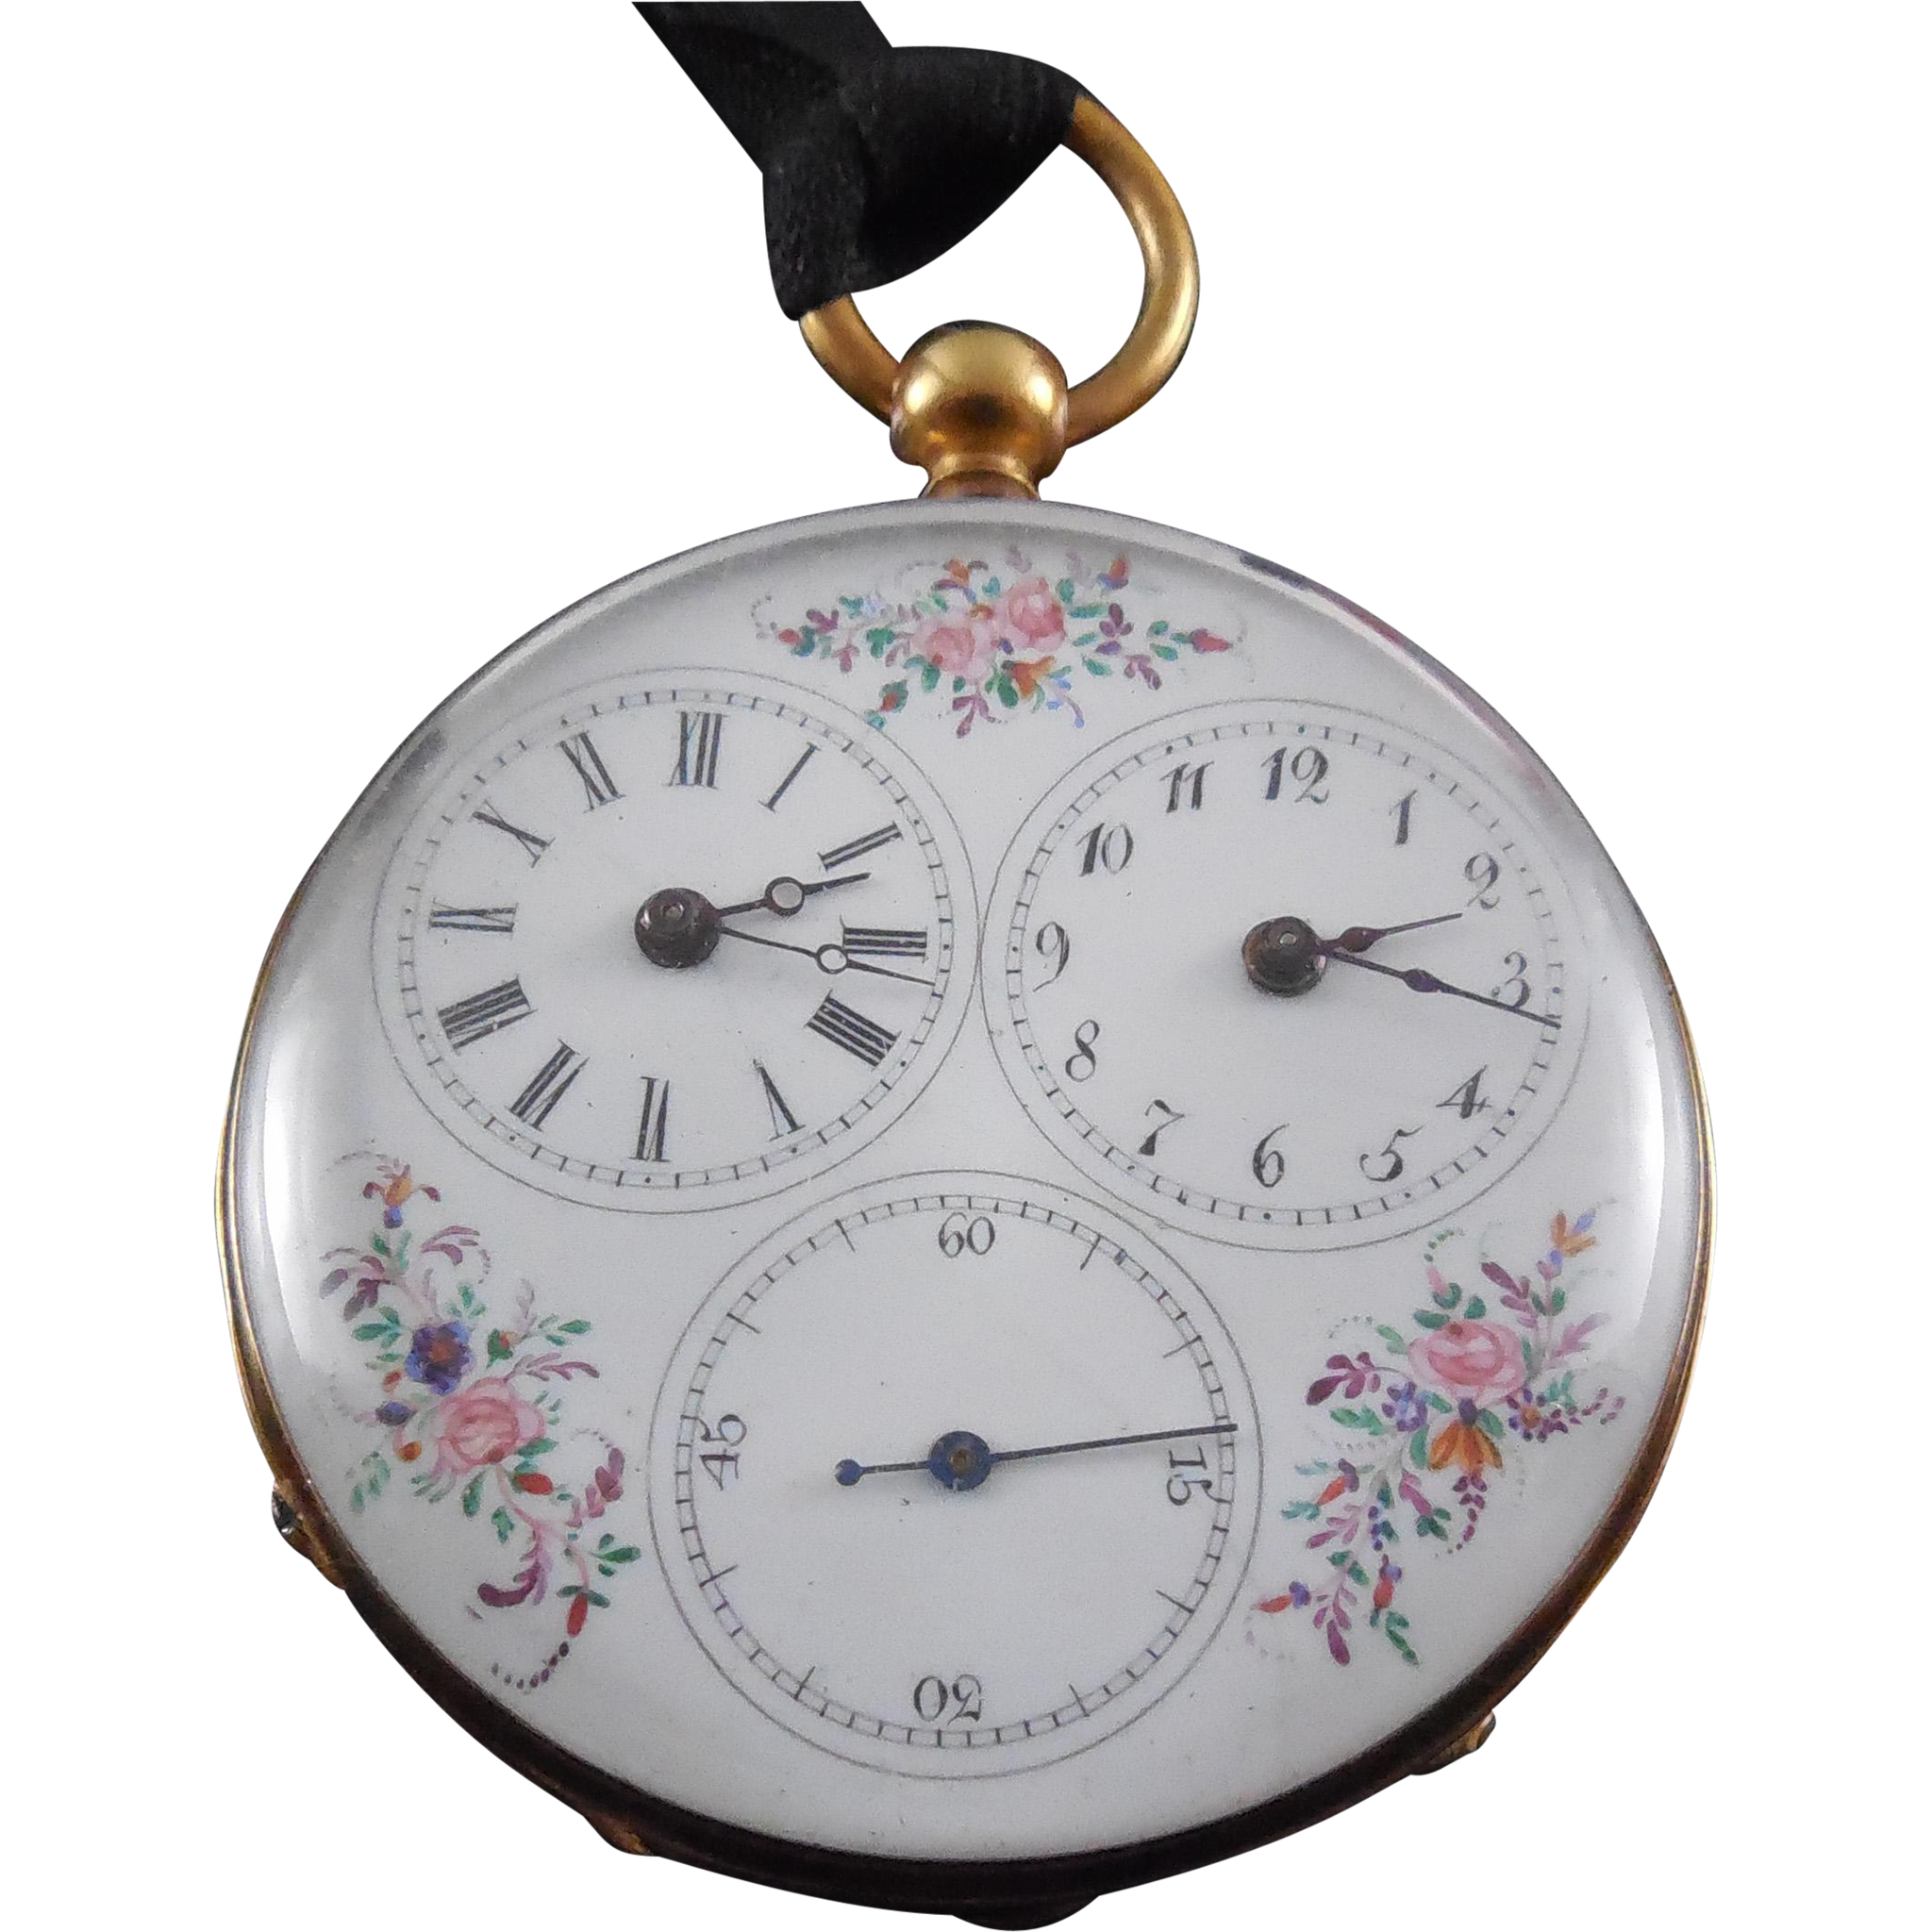 Victorian Dual Time Zone Captain's Pocket Watch - Enamel Flower Dial Circa 1870